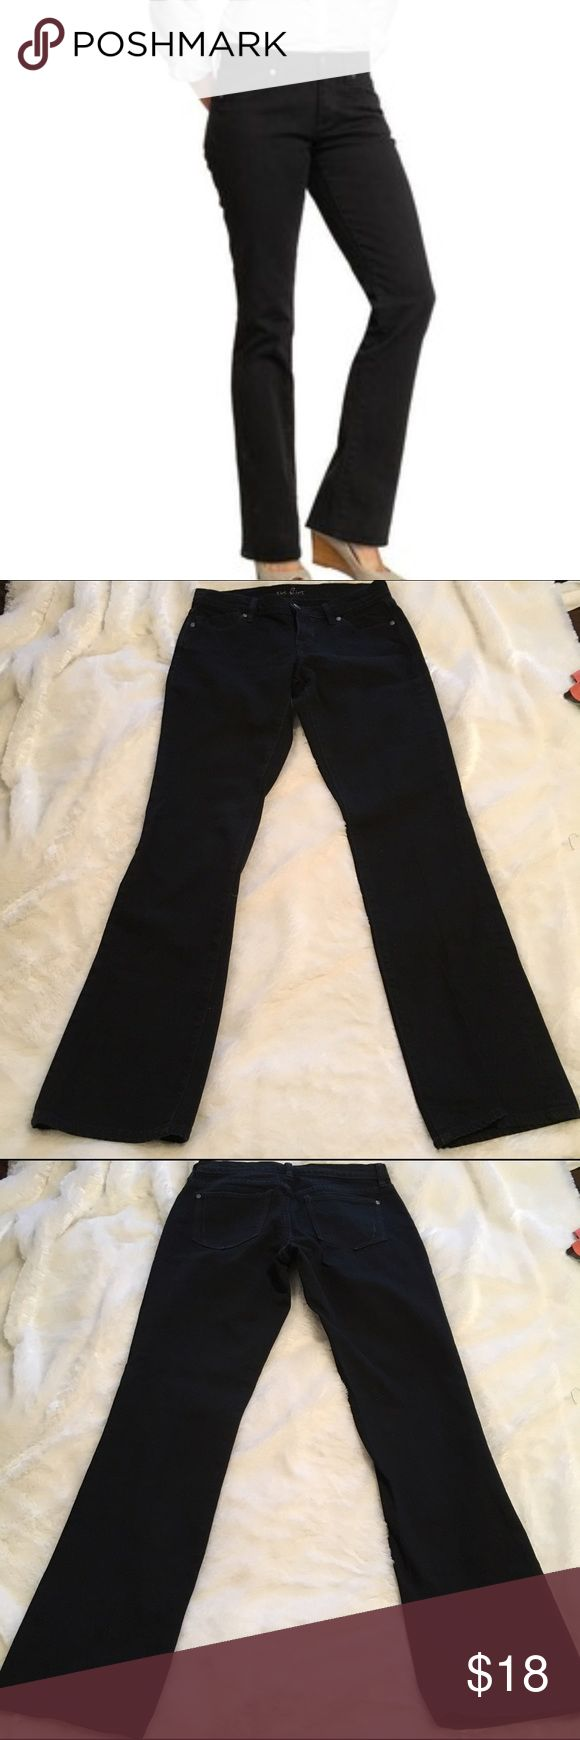 """Old Navy Flirt Black Mid-Rise Bootcut Jeans Old Navy Flirt Black Mid-rise Bootcut stretch jeans. Size 2. In like new condition. No fade to the black at all. 99% cotton, 1% spandex. Waist 14.25"""", rise 8"""", inseam 31"""". ❌NO TRADES ❌NO LOWBALLING❌ Old Navy Jeans Boot Cut"""